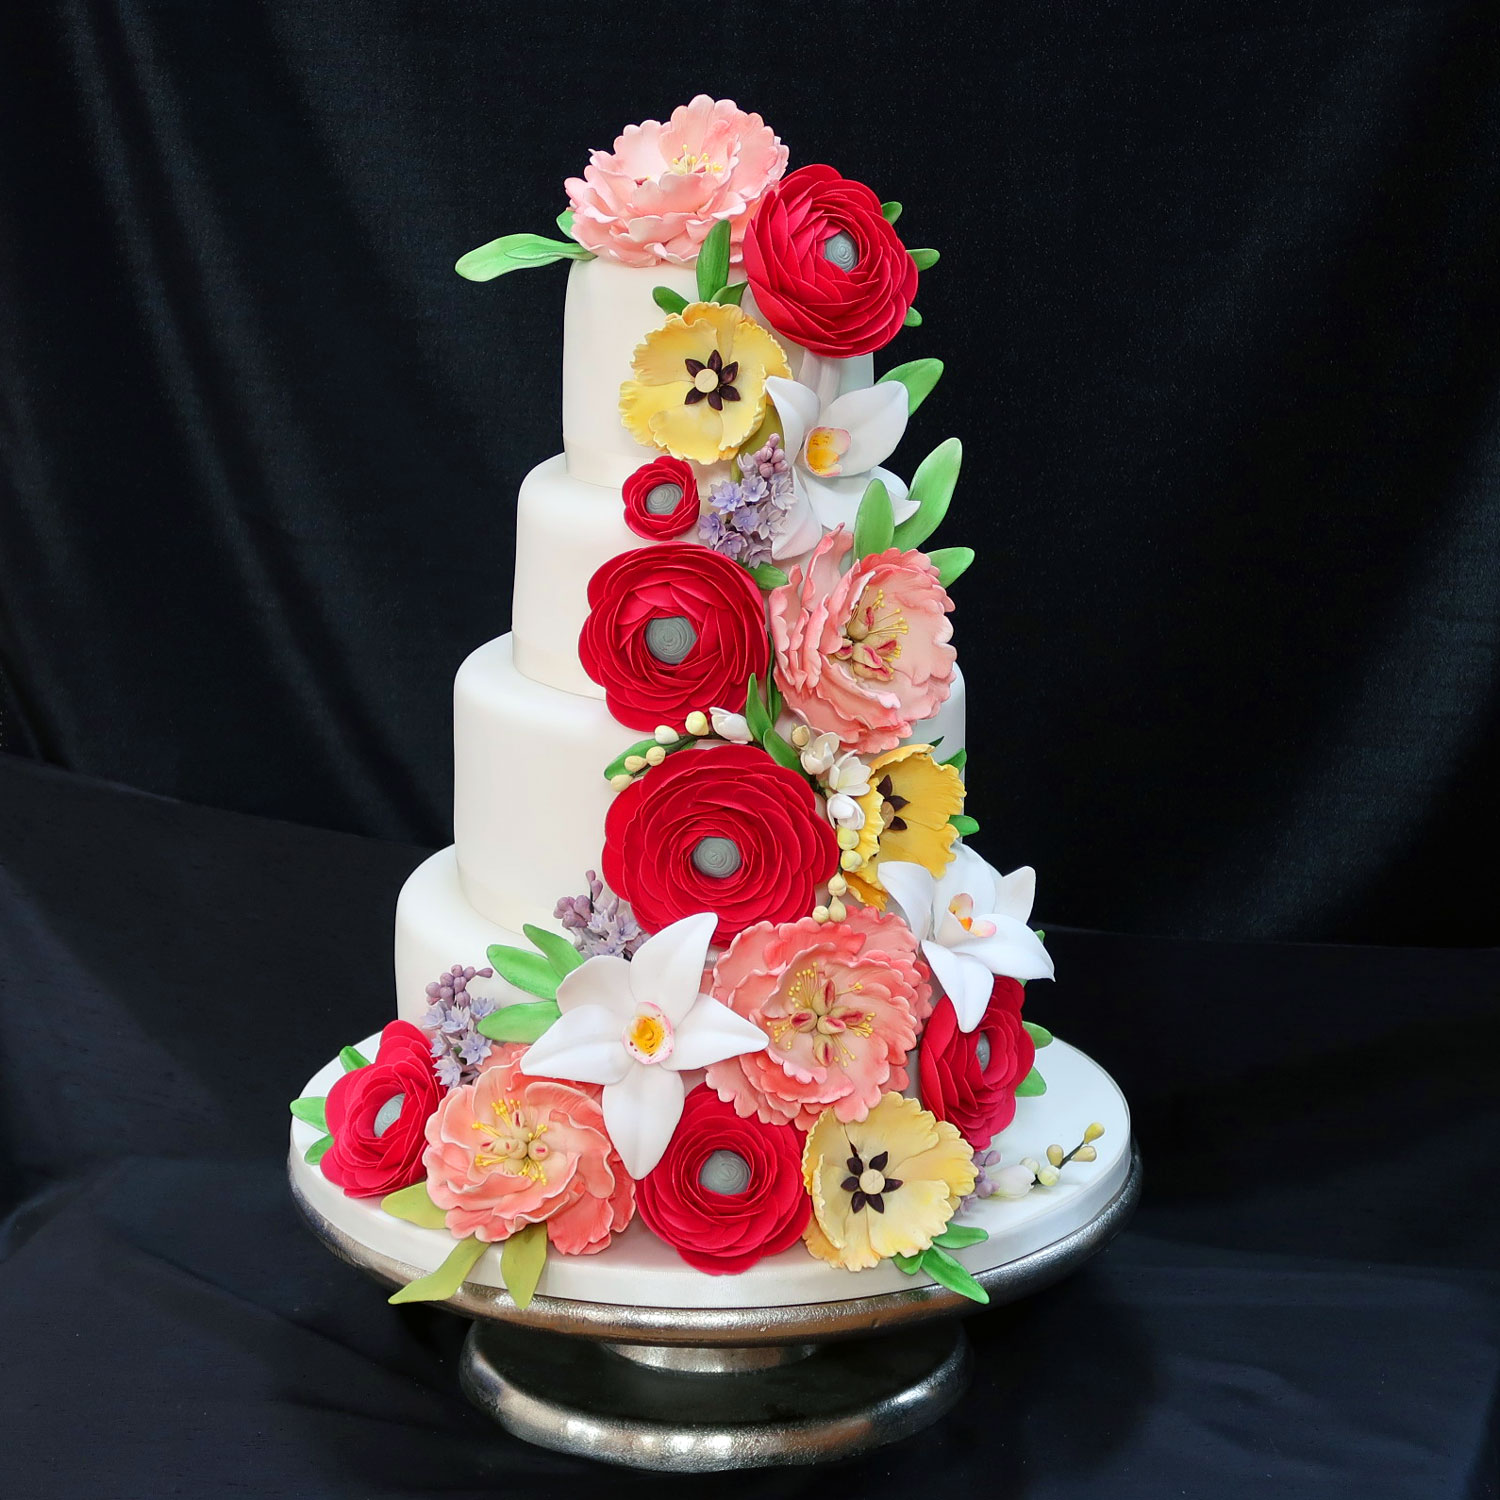 Floral wedding cakes floral wedding cakes and cakes with sugar roses 4 tier wedding cake with a cascade of handcrafted sugar flowers izmirmasajfo